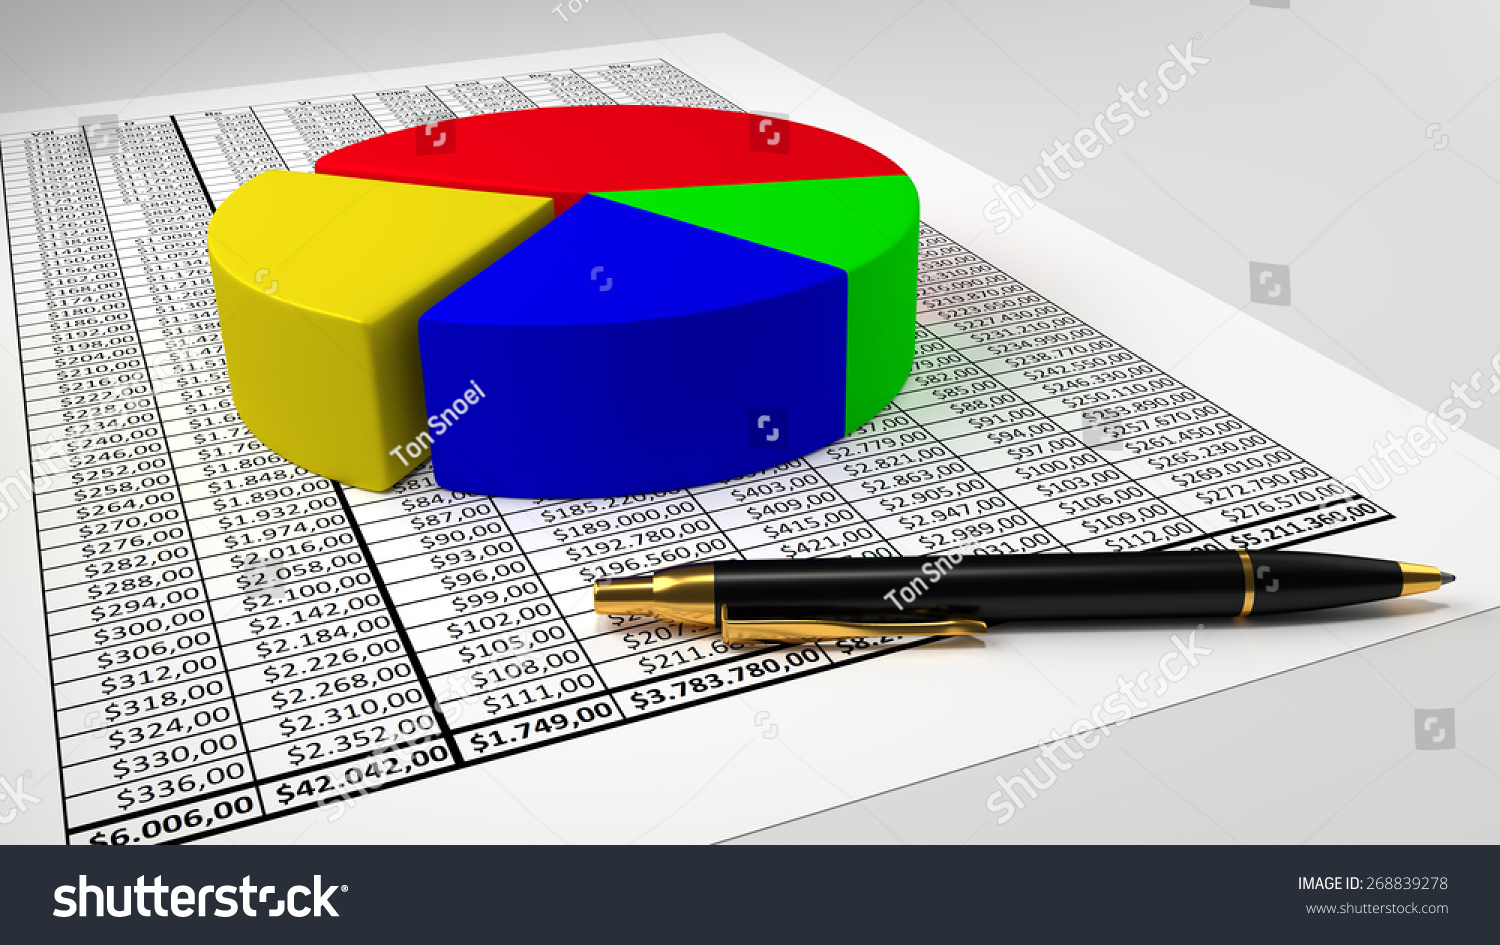 Spreadsheet pie chart pen stock illustration 268839278 shutterstock spreadsheet with pie chart and pen nvjuhfo Image collections